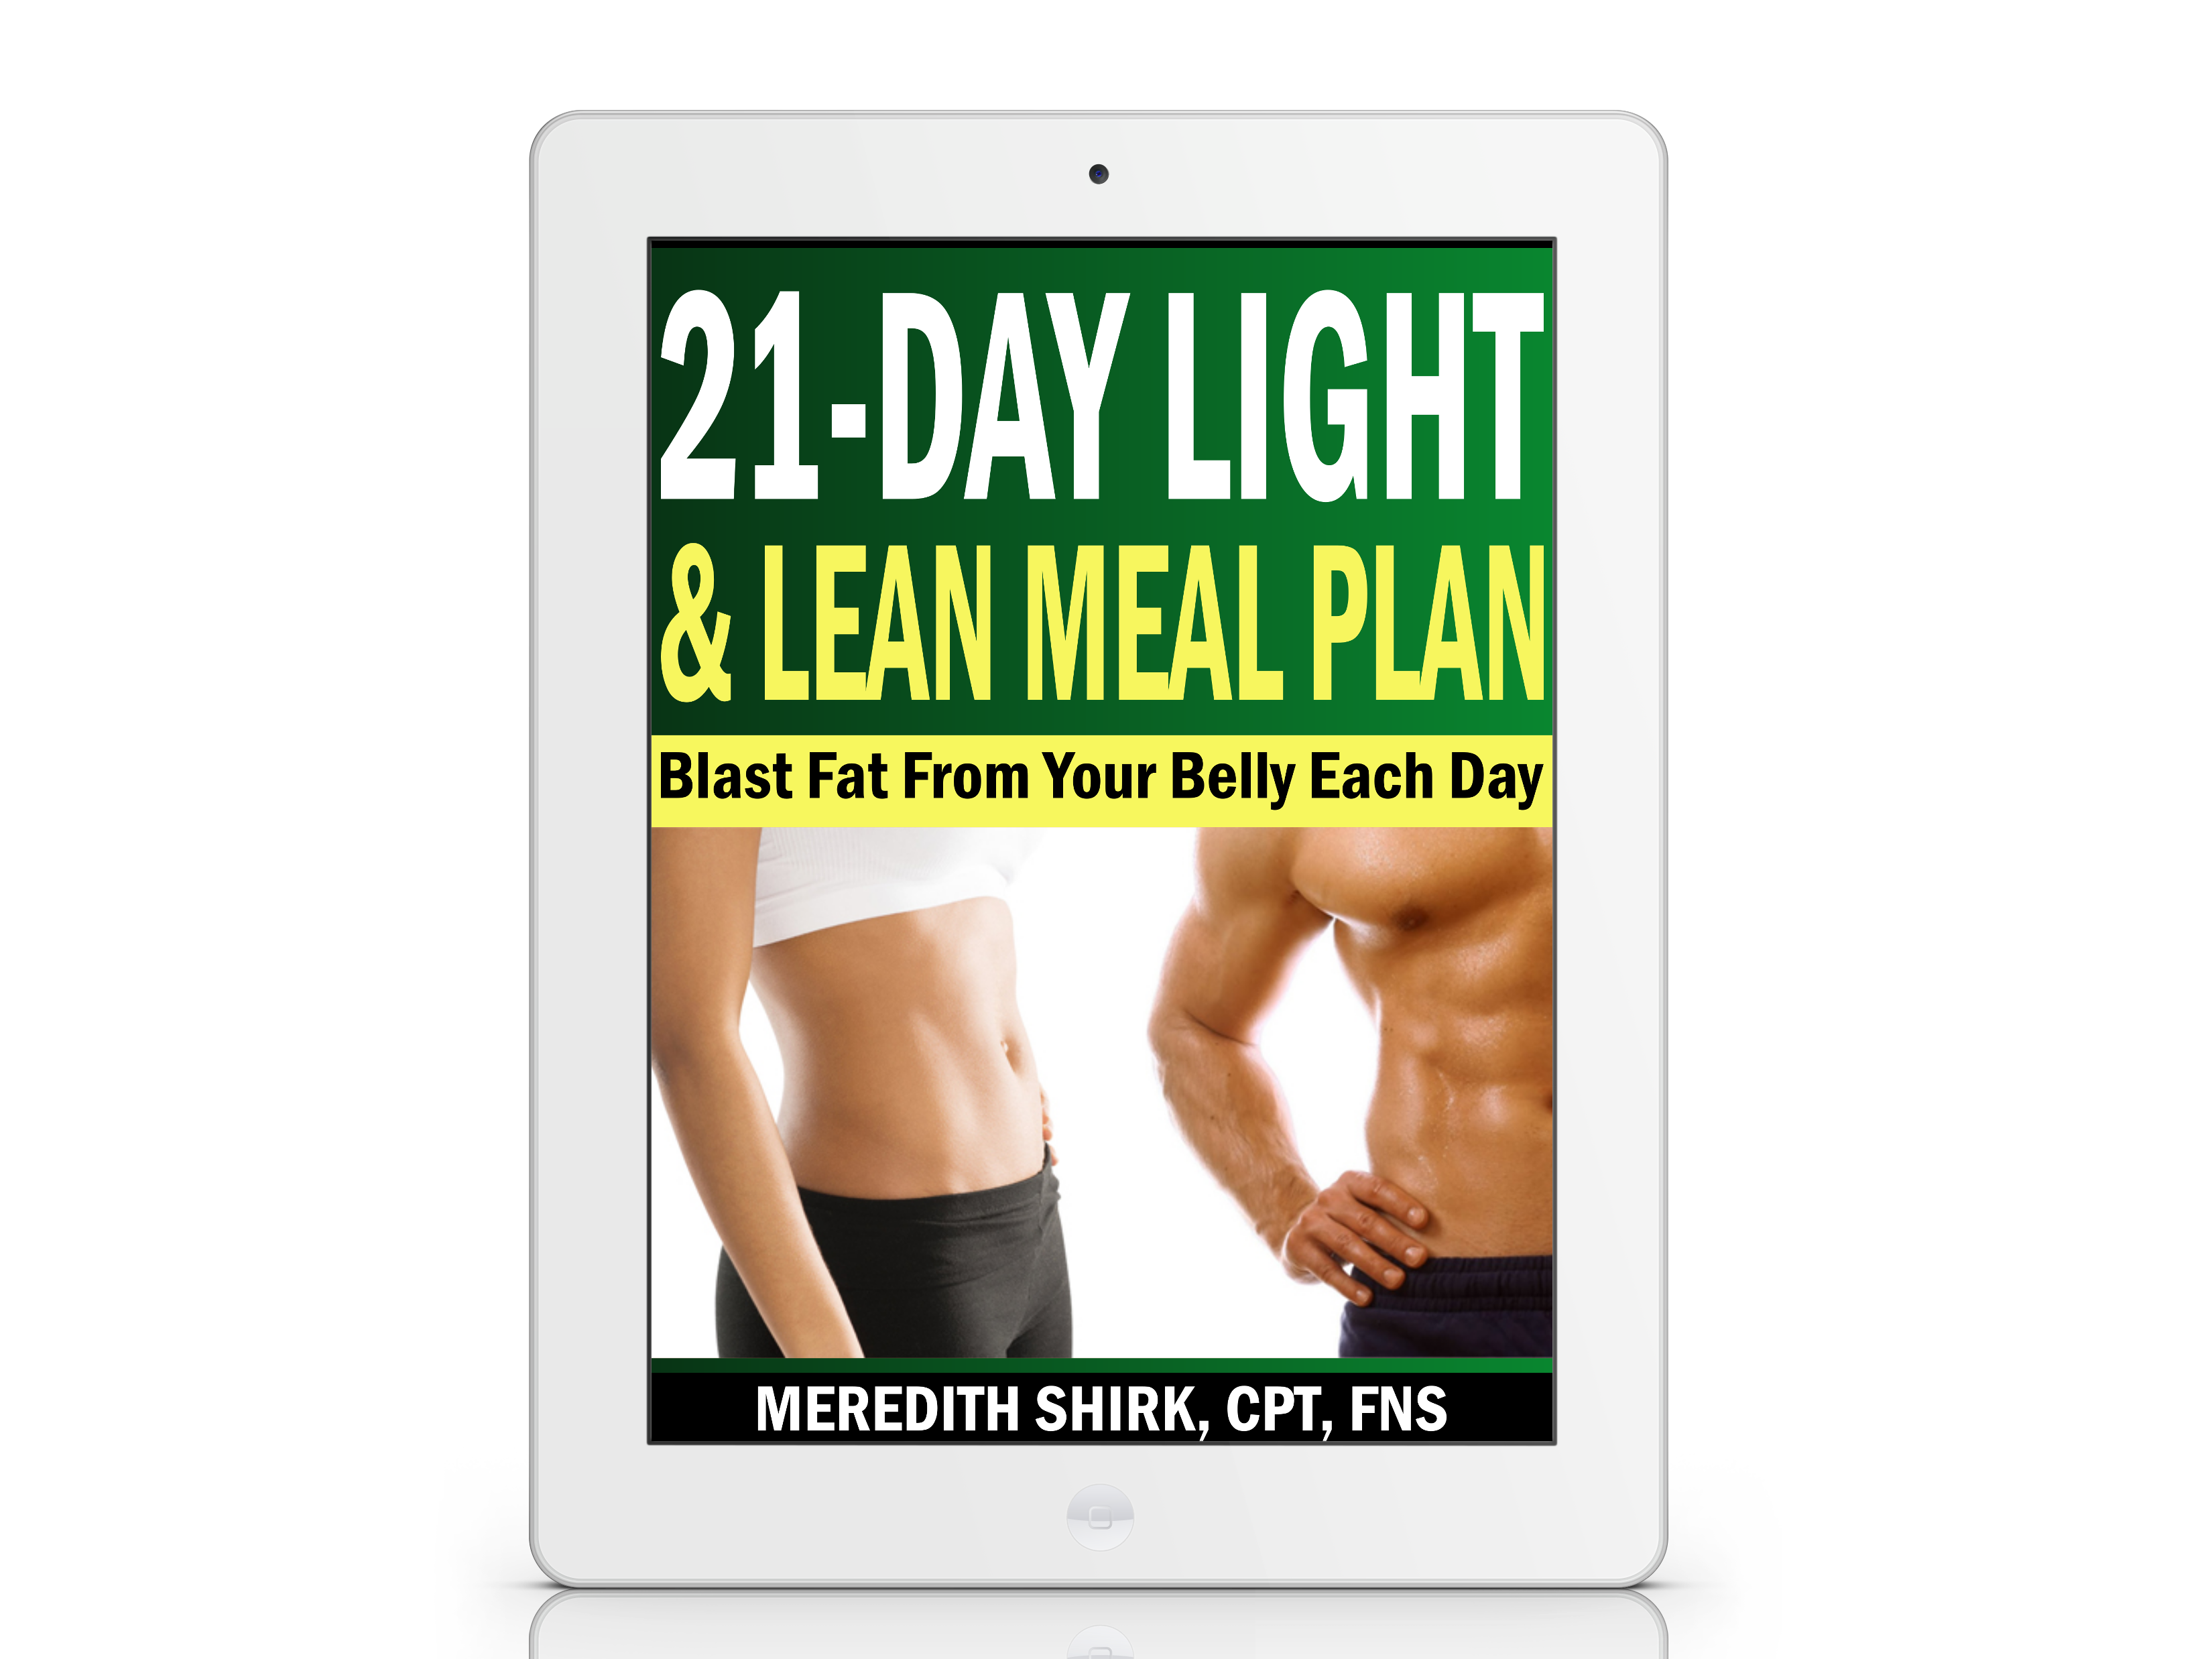 Light & Lean Meal Plan